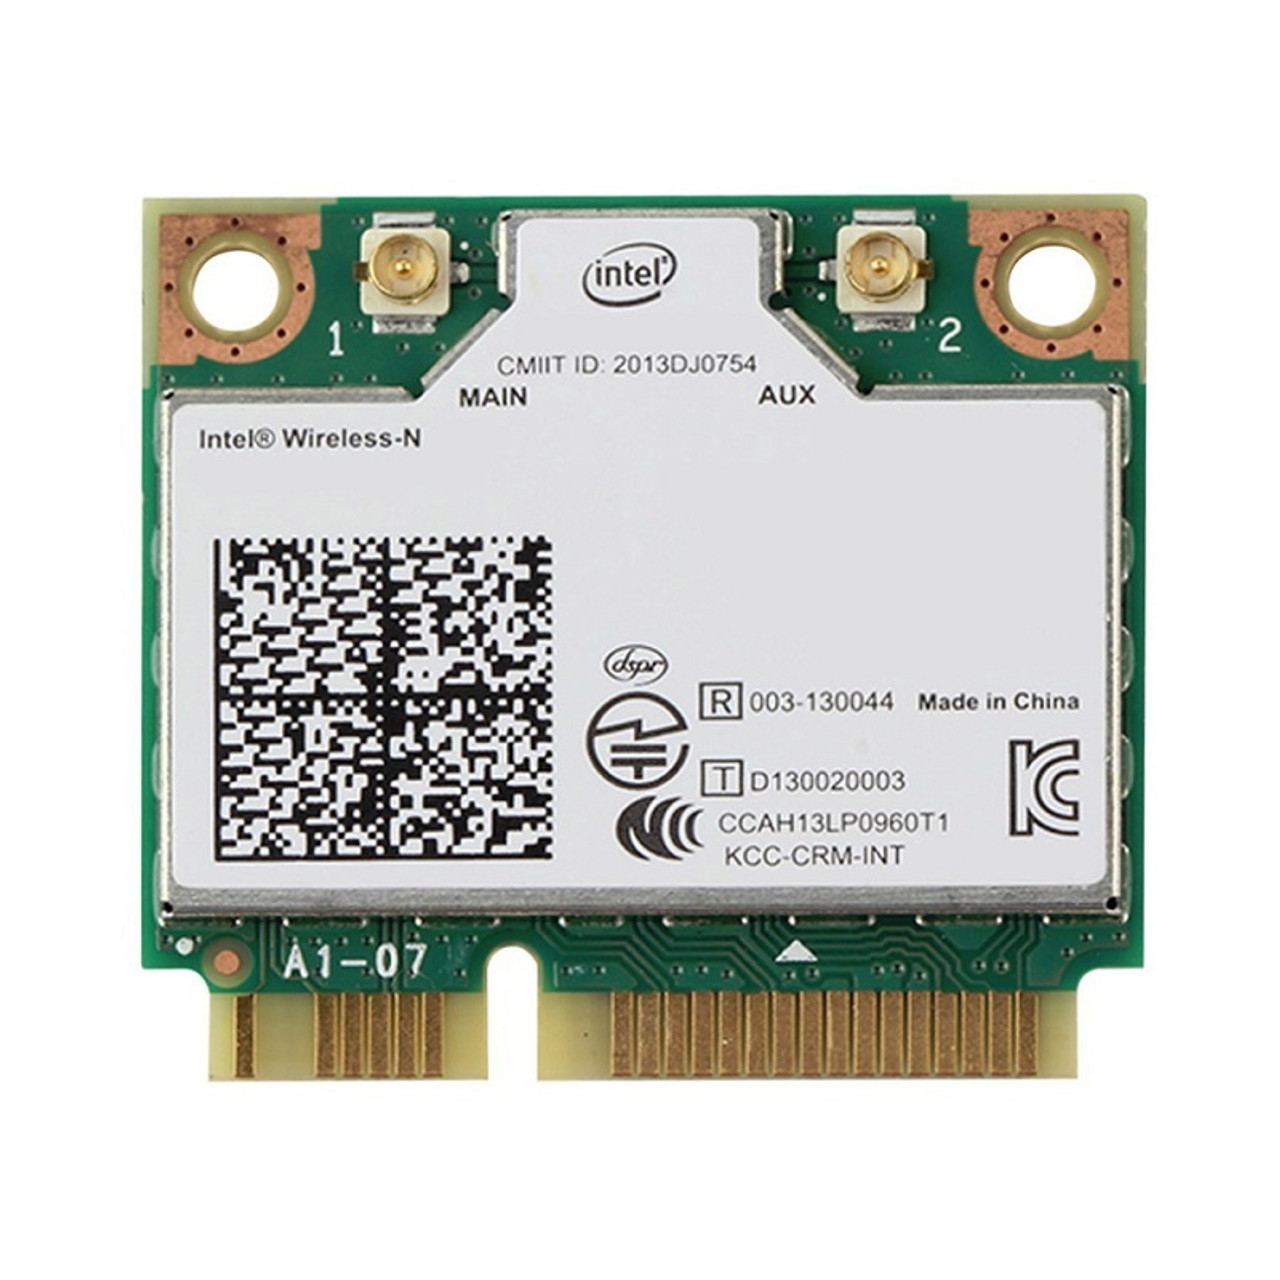 INTEL PROWIRELESS 2915ABG NETWORK CARD DRIVERS FOR WINDOWS DOWNLOAD